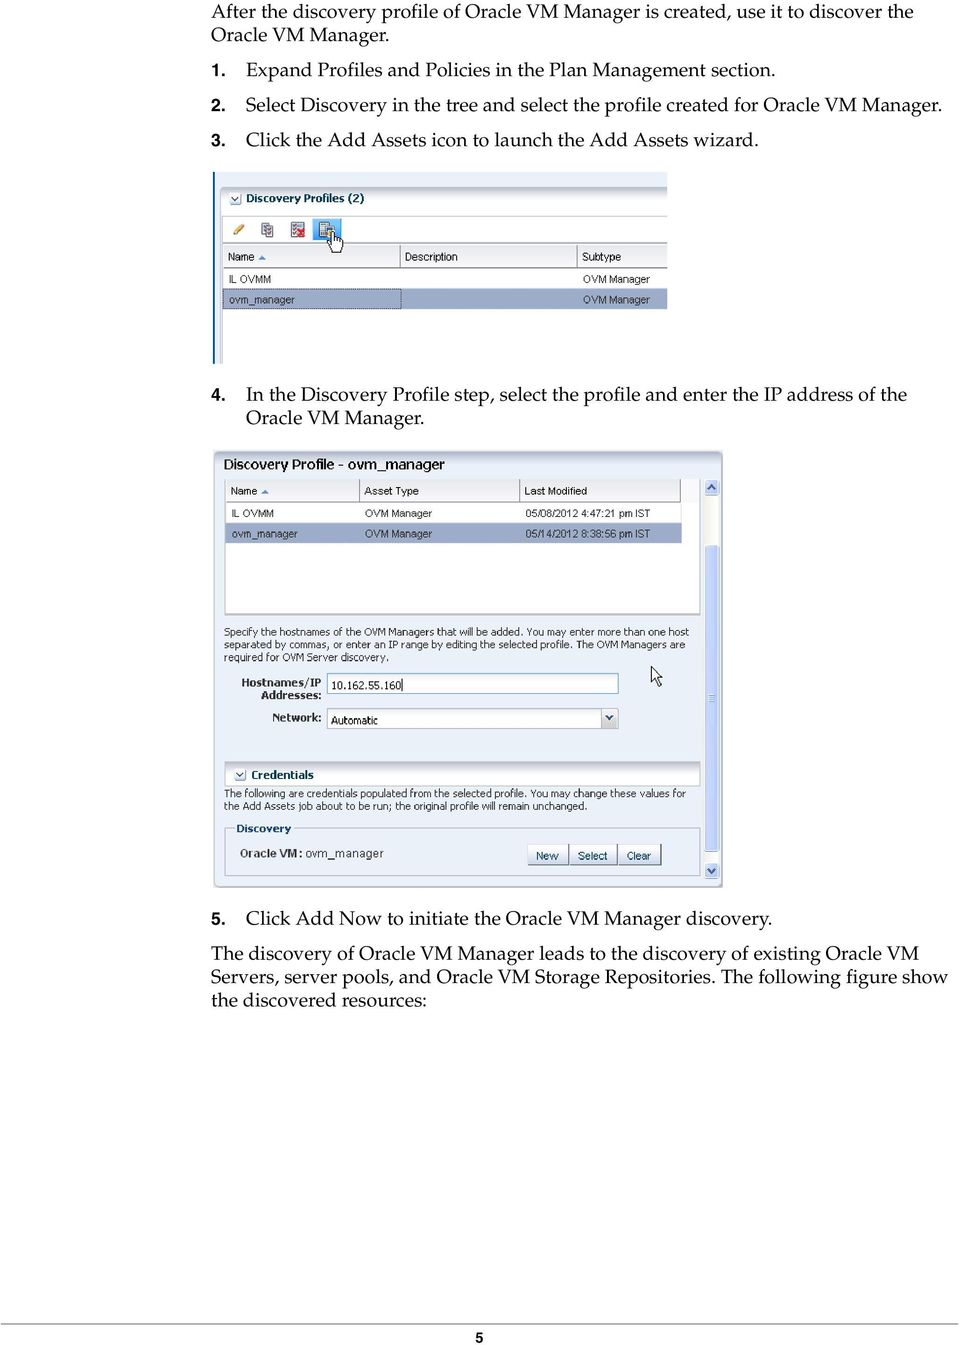 In the Discovery Profile step, select the profile and enter the IP address of the Oracle VM Manager. 5. Click Add Now to initiate the Oracle VM Manager discovery.